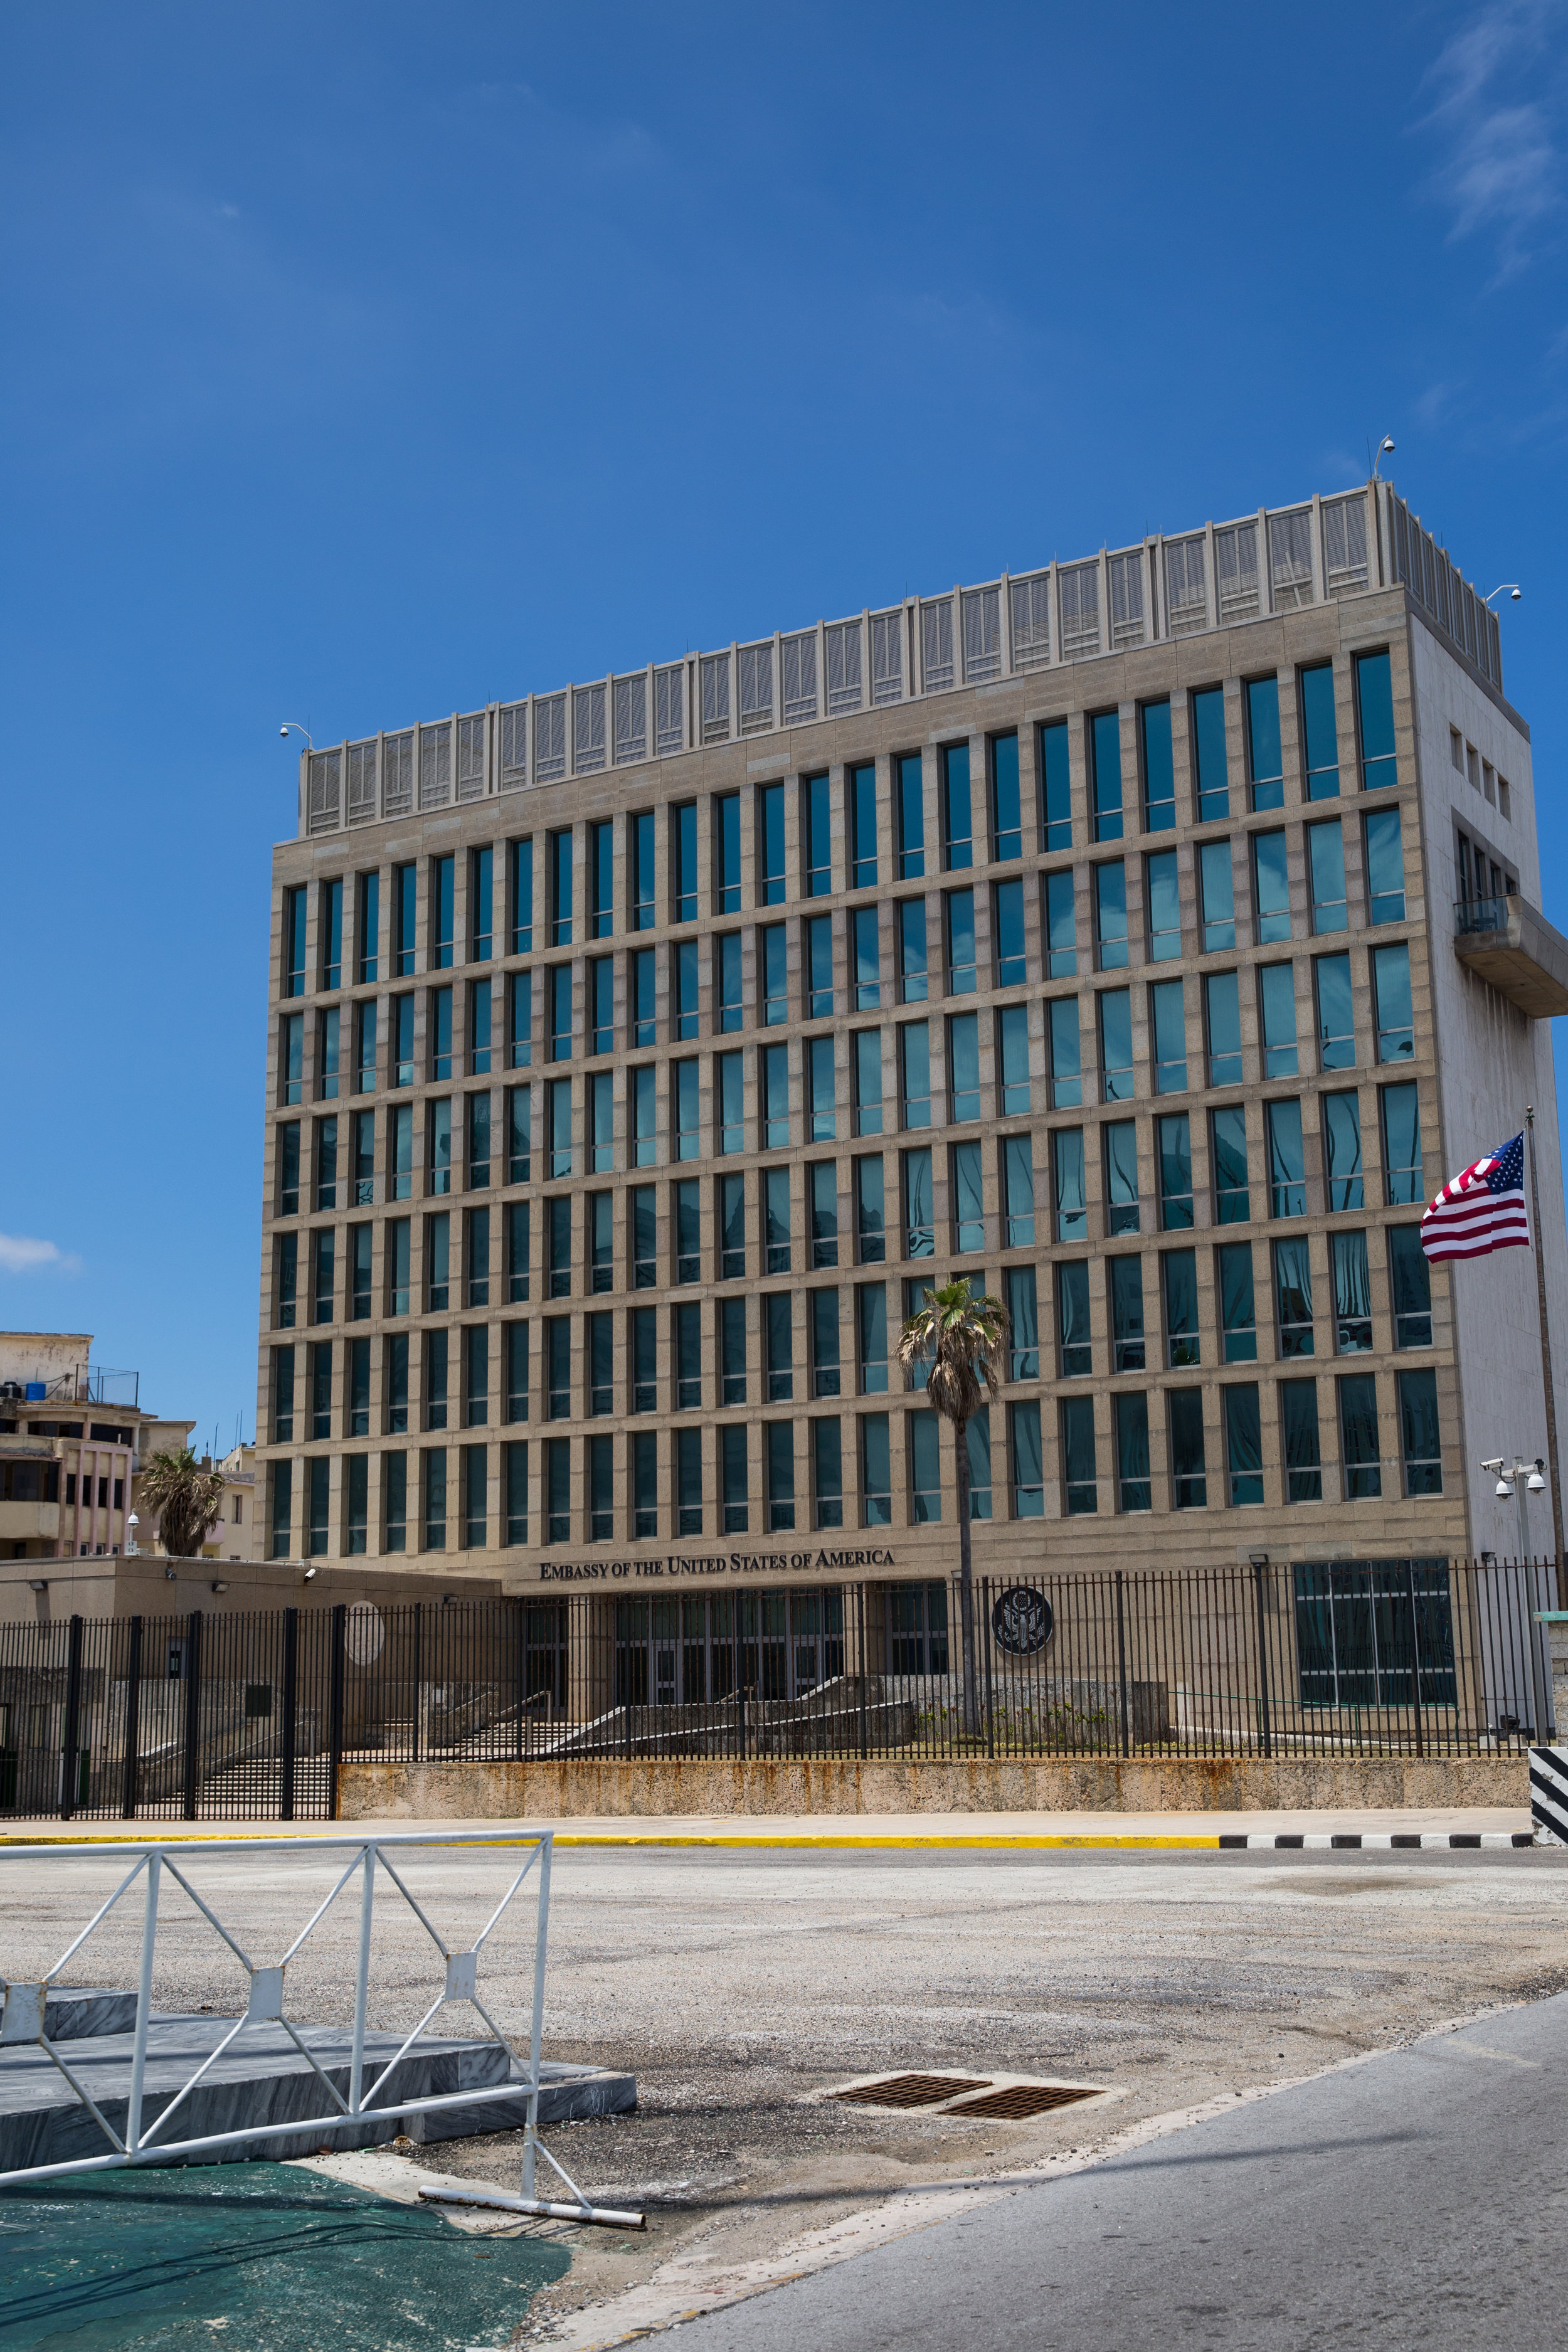 Located on the Malecón, the US Embassy had been shuttered for over 50 years until the Obama presidency. Even now it stands fairly quiet it seems.